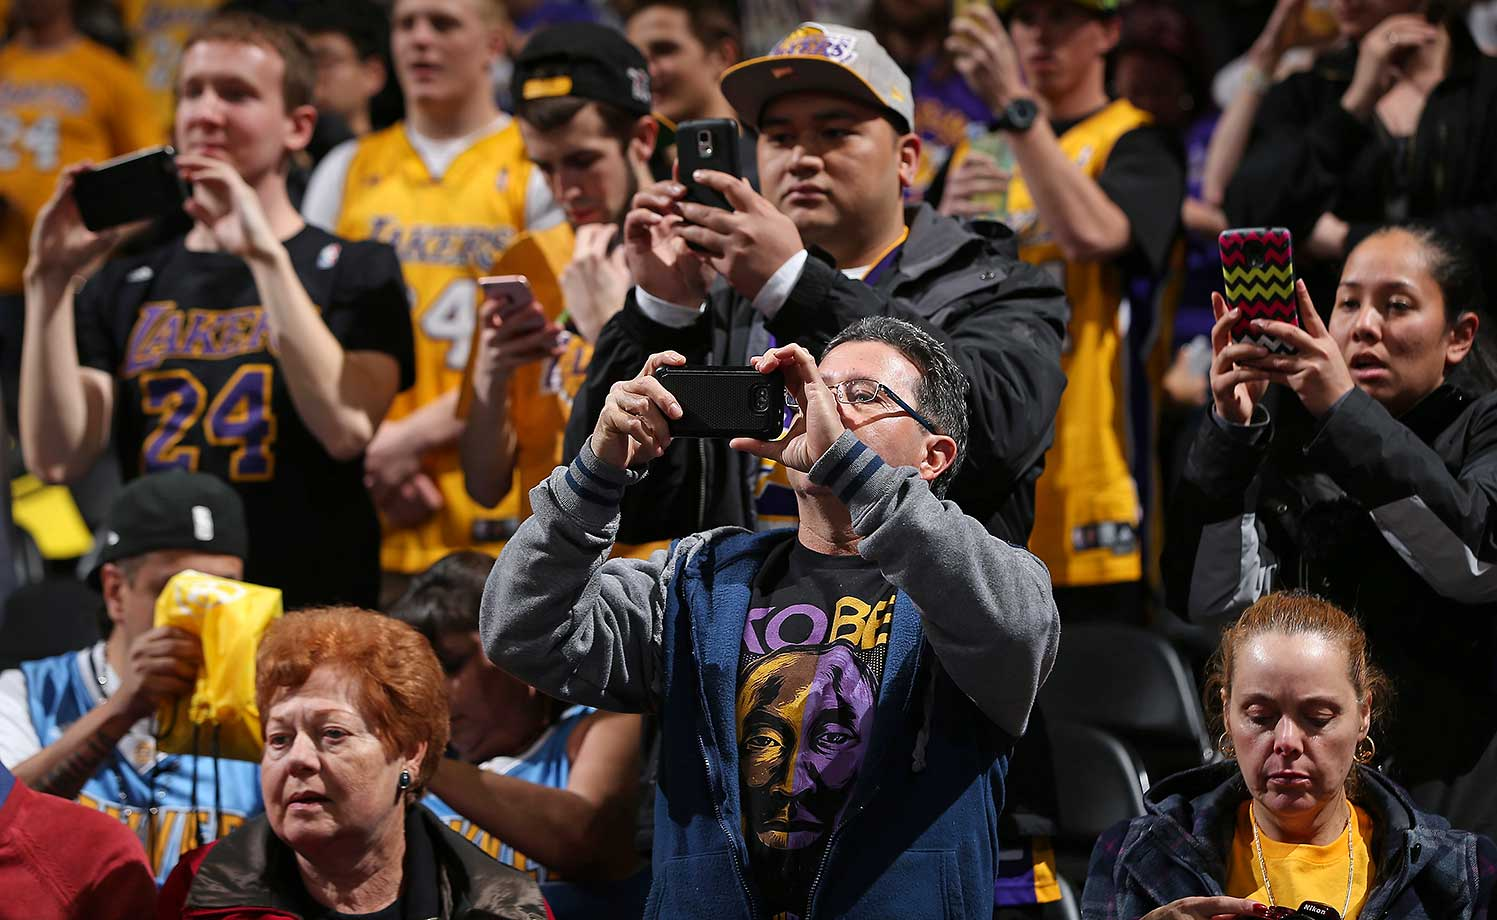 Fans try to capture a photo of Kobe Bryant as he warms up prior to facing the Denver Nuggets.